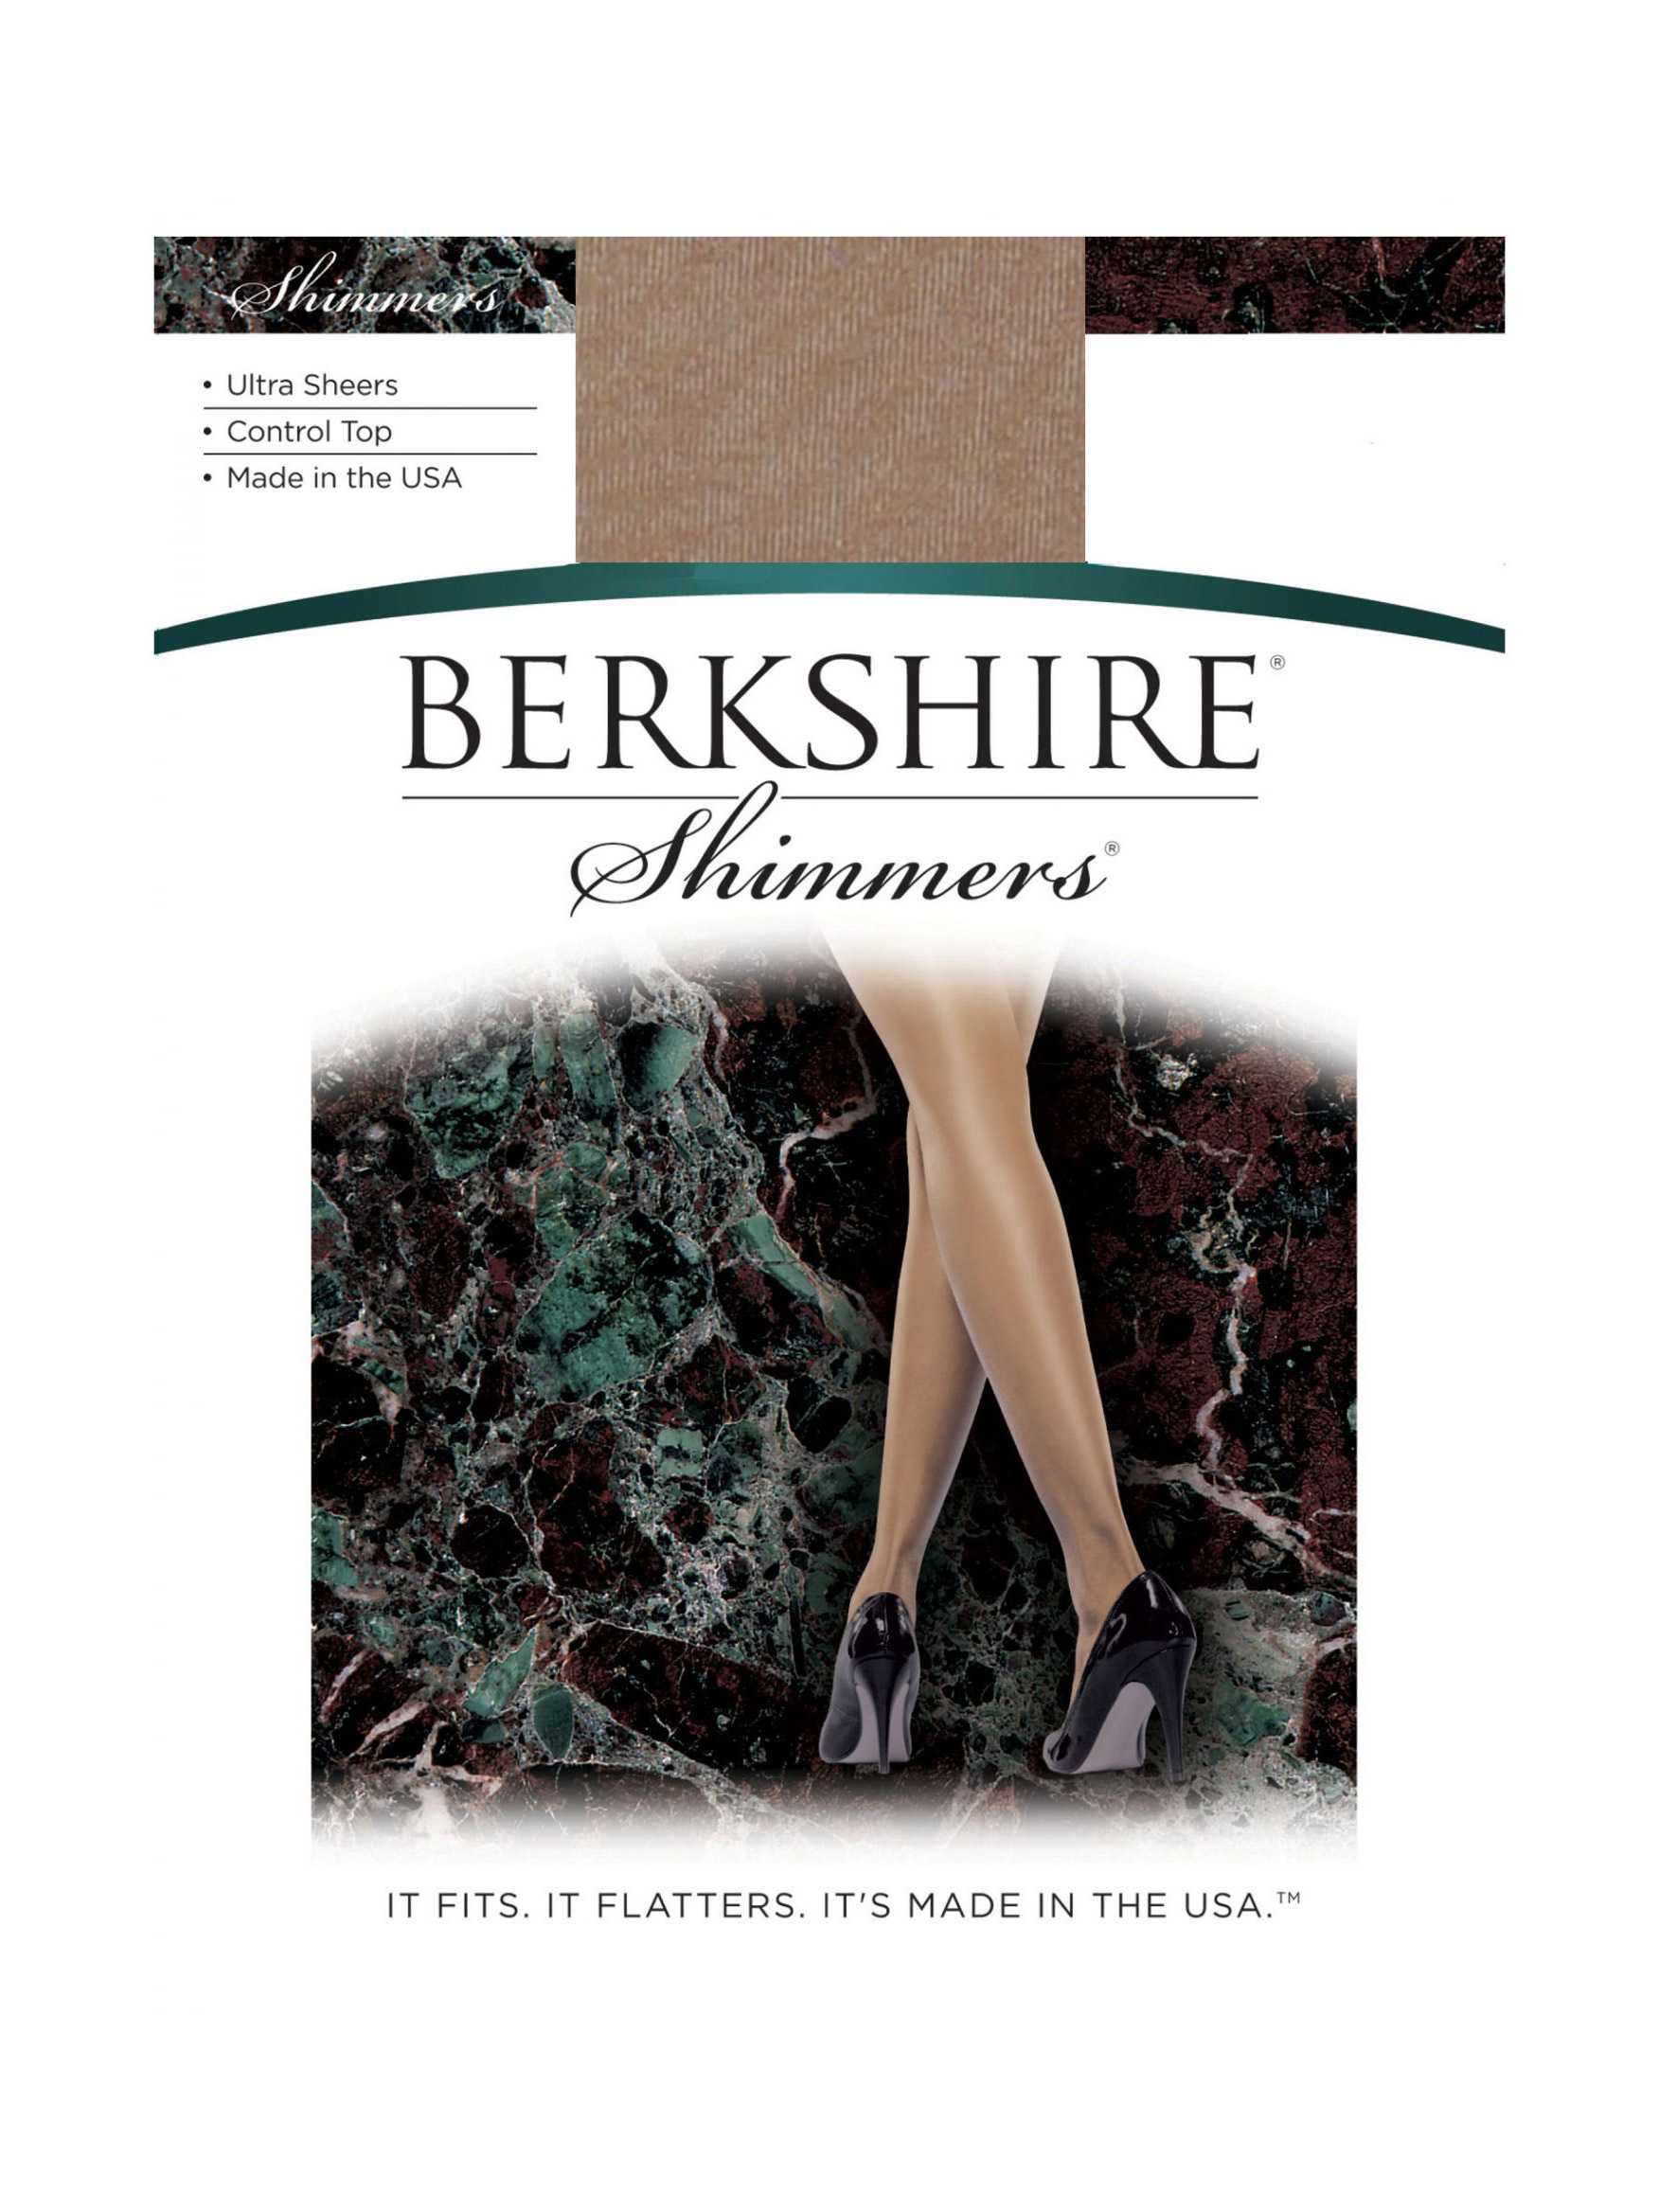 Berkshire Women's Shimmers Ultra Sheer Control Top Pantyhose - Sandalfoot 4429